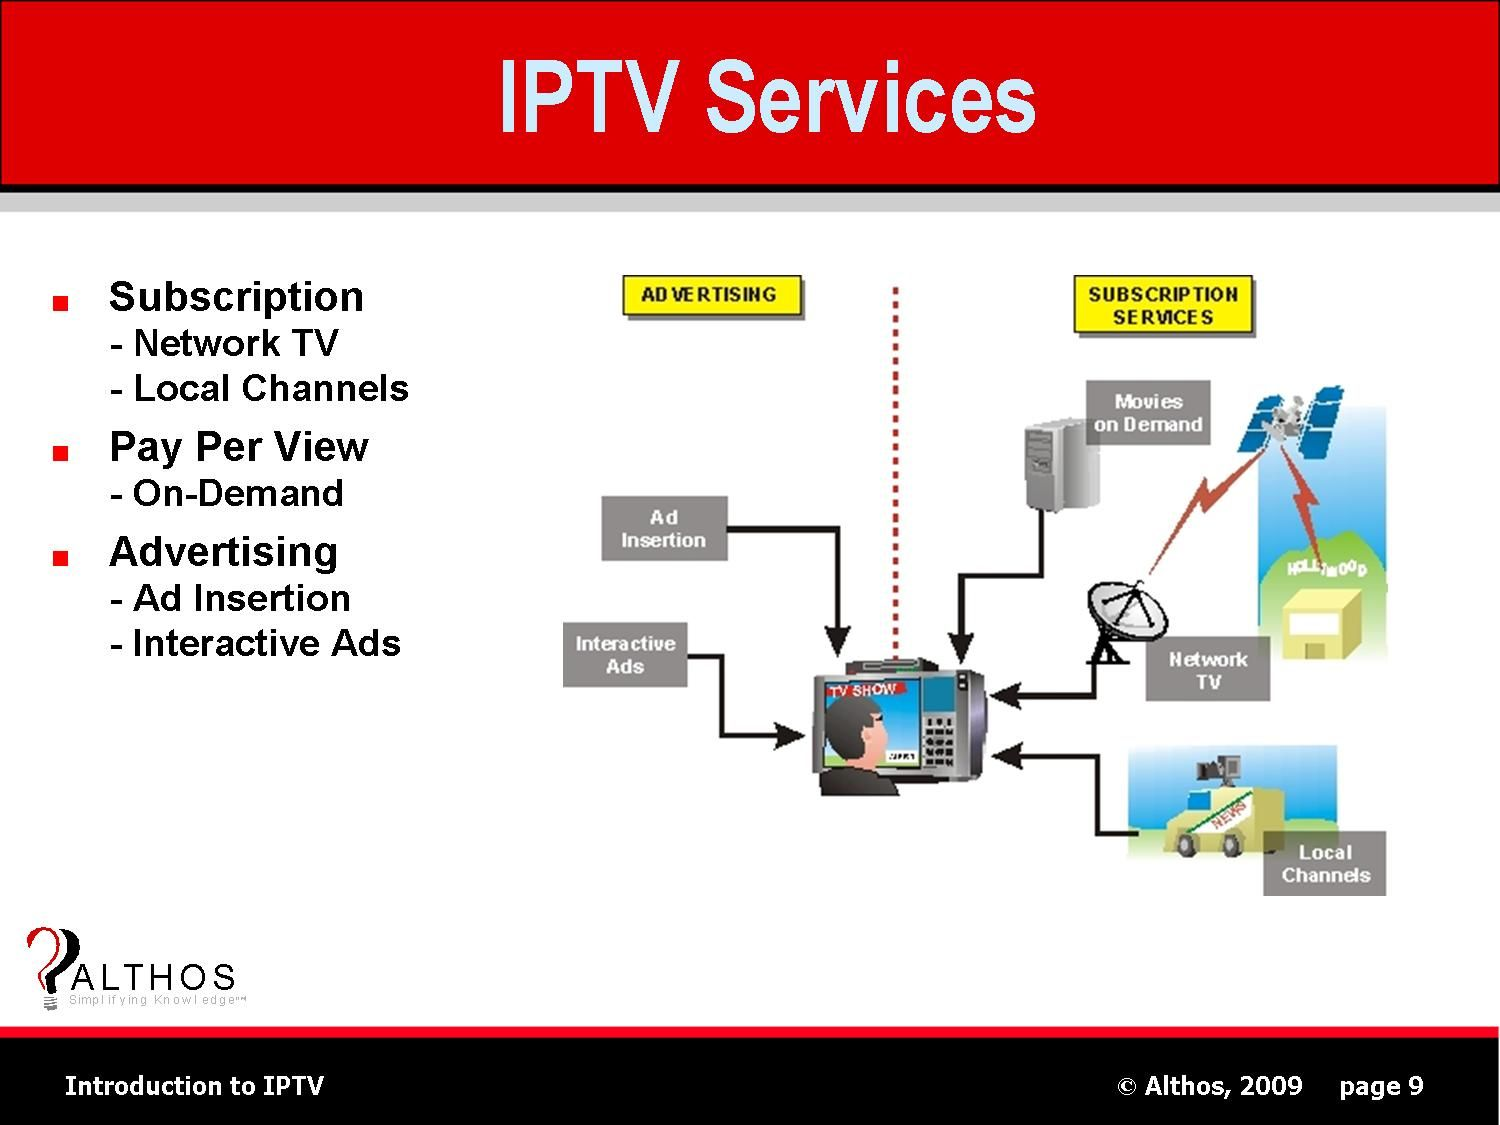 IPTV services are the delivery of media or programs to